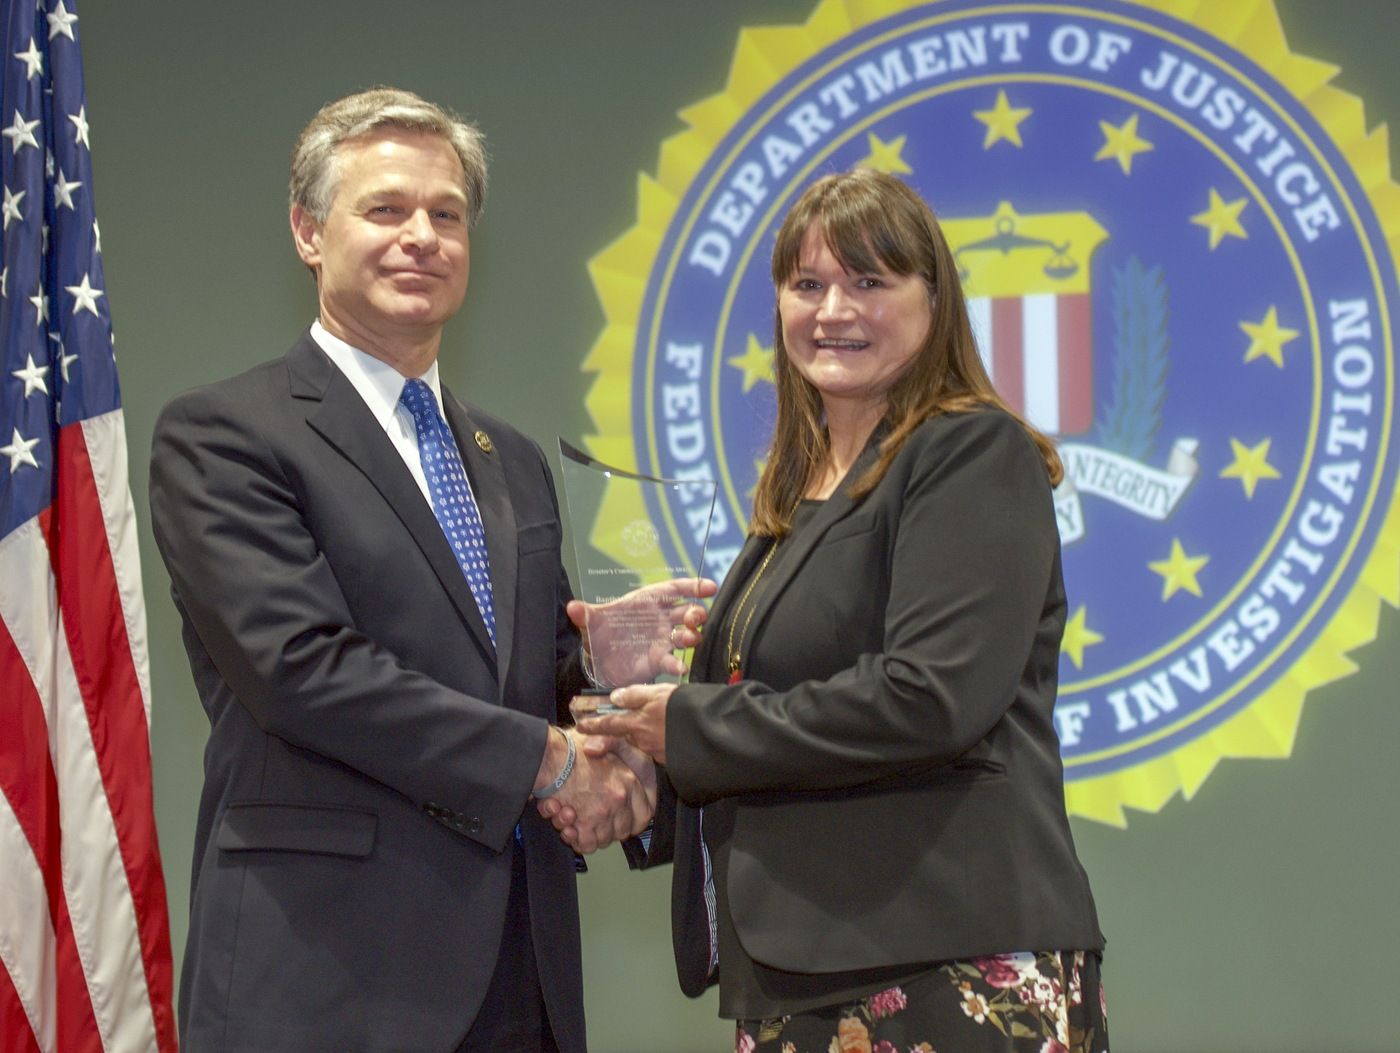 FBI Director Christopher Wray presents New Orleans Division recipient the Baptist Friendship House (represented by Kay Bennett) with the Director's Community Leadership Award (DCLA) at a ceremony at FBI Headquarters on May 3, 2019.